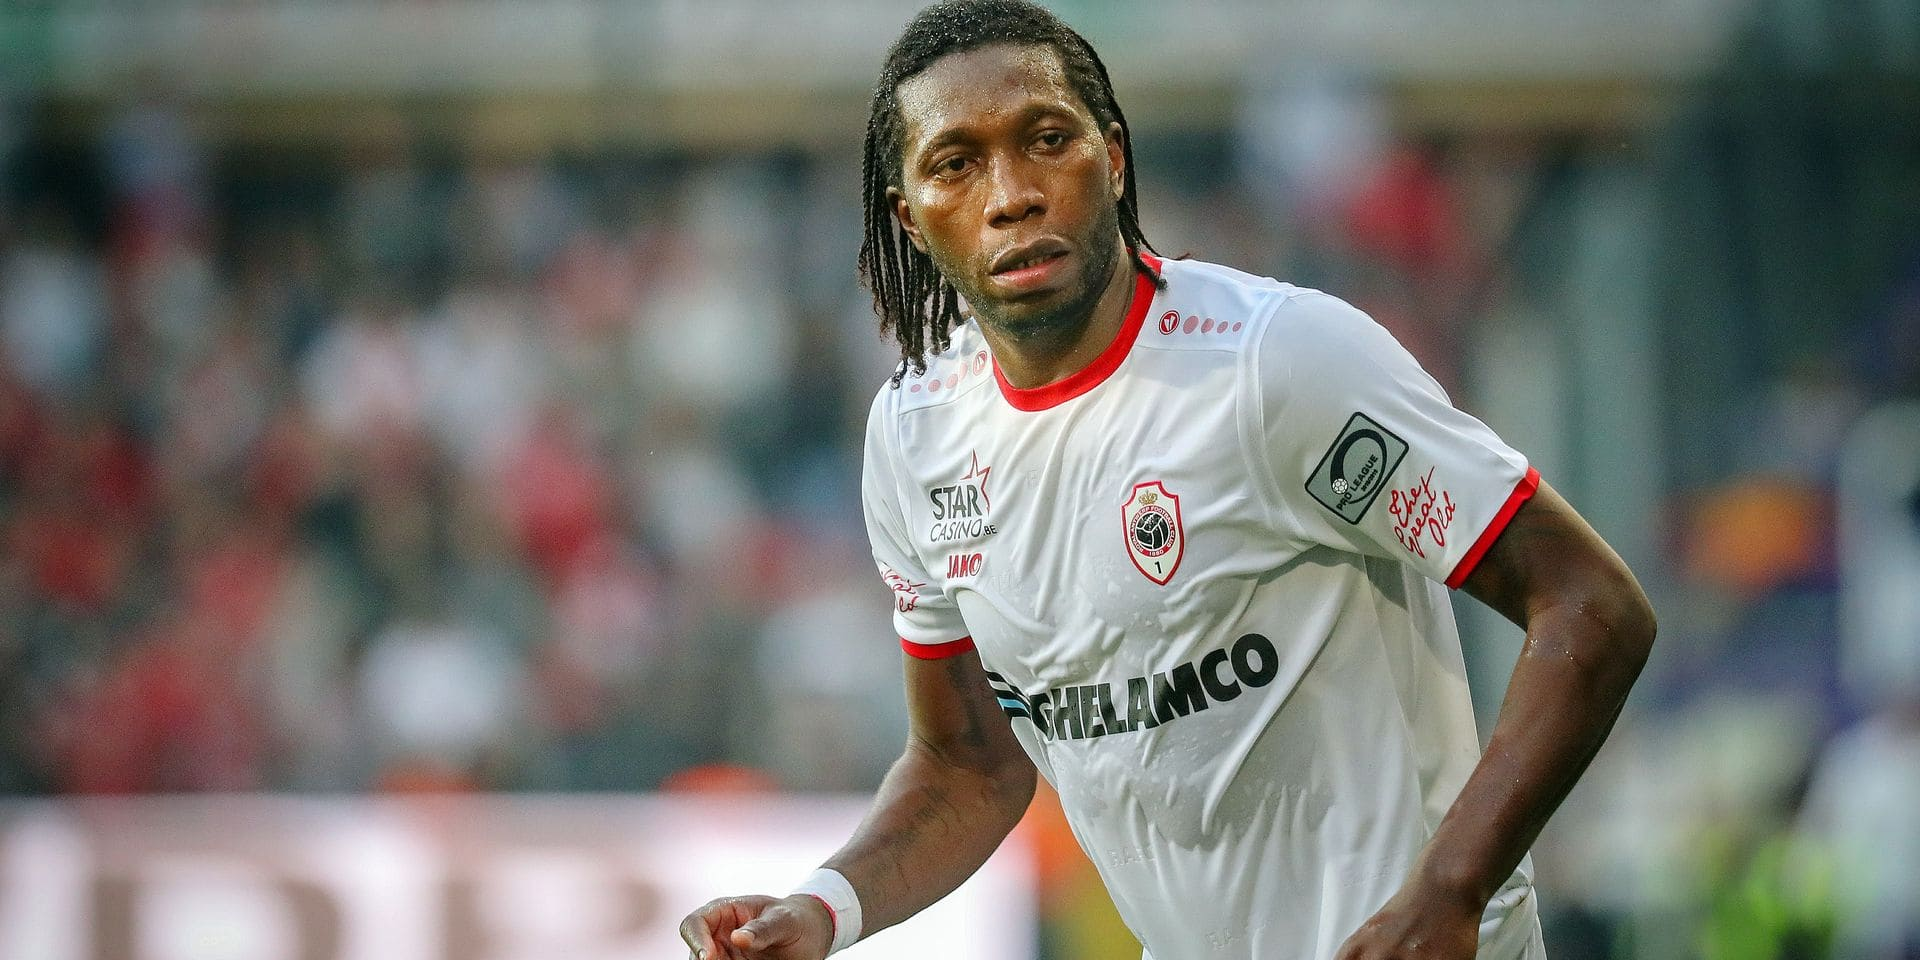 Antwerp's Dieudonne Mbokani Bezua pictured during a soccer match between RSC Anderlecht and Royal Antwerp FC, Sunday 07 April 2019 in Brussels, on day 3 (out of 10) of the Play-off 1 of the 'Jupiler Pro League' Belgian soccer championship. BELGA PHOTO VIRGINIE LEFOUR